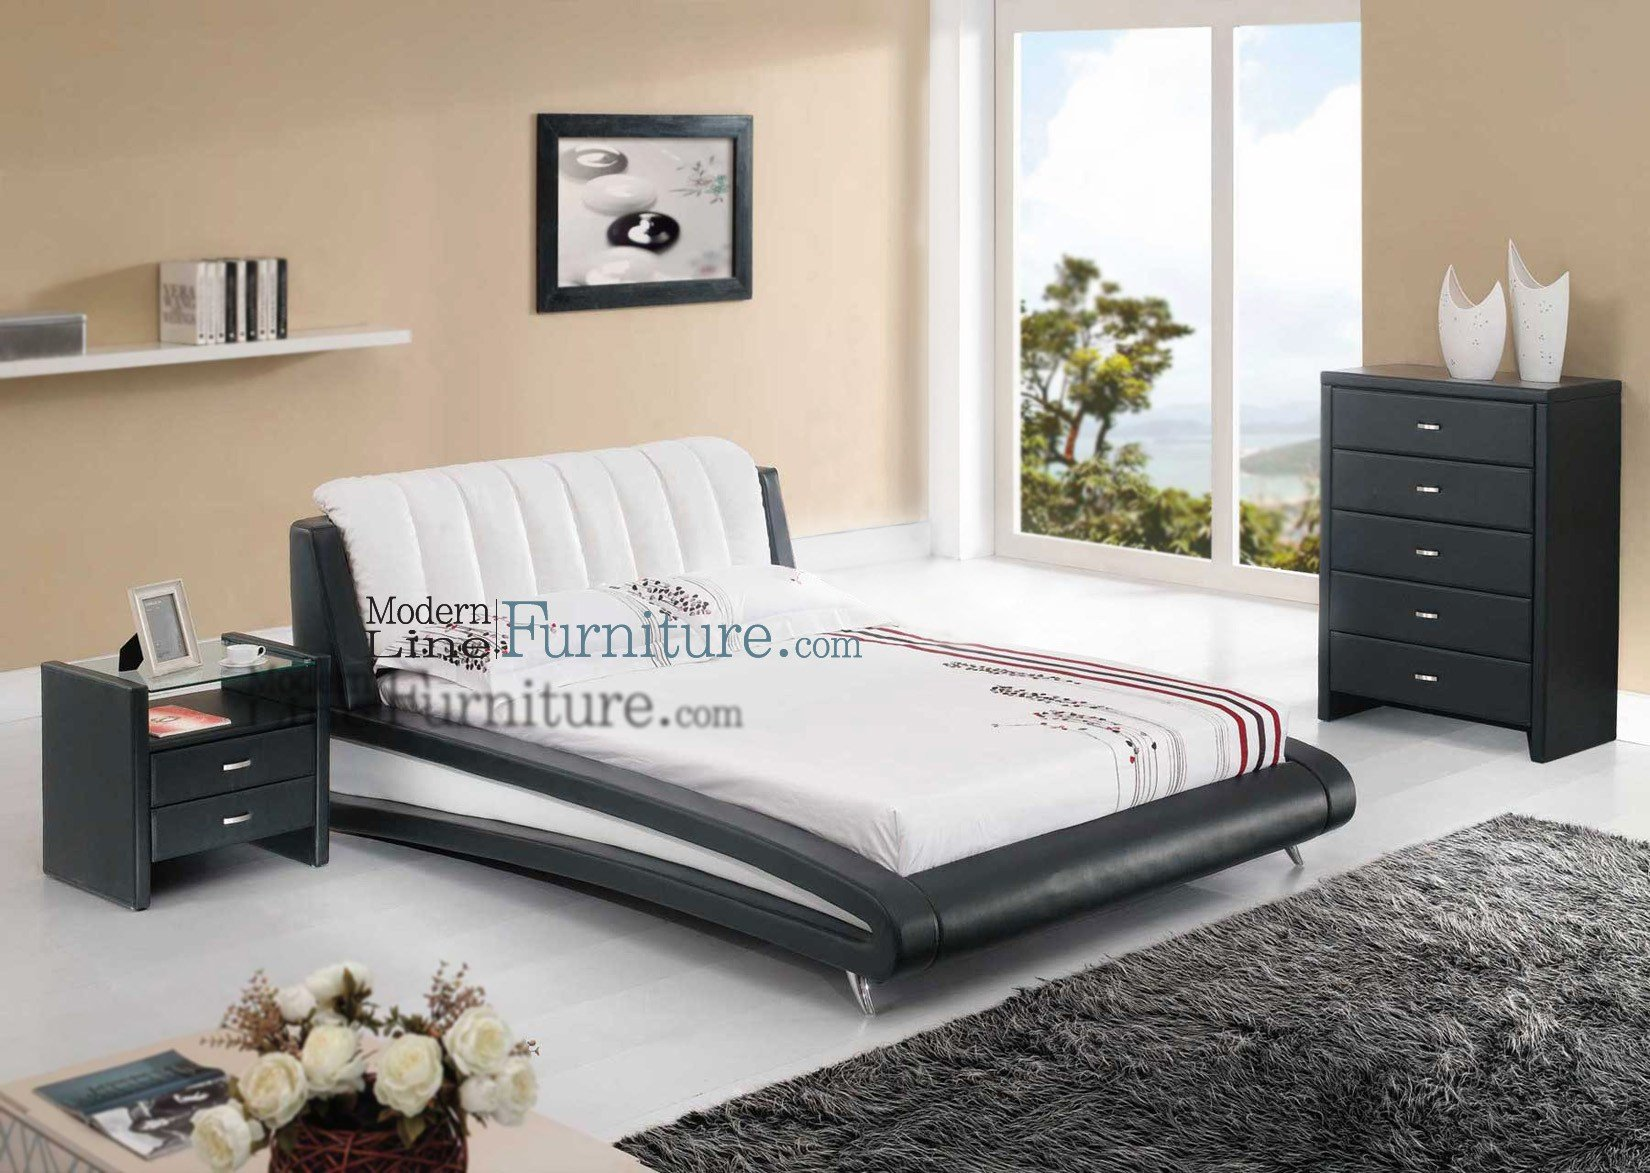 Best Sleek Modern Full Size Bedroom Set Better Home Improvement Www Betterimprovement Com With Pictures